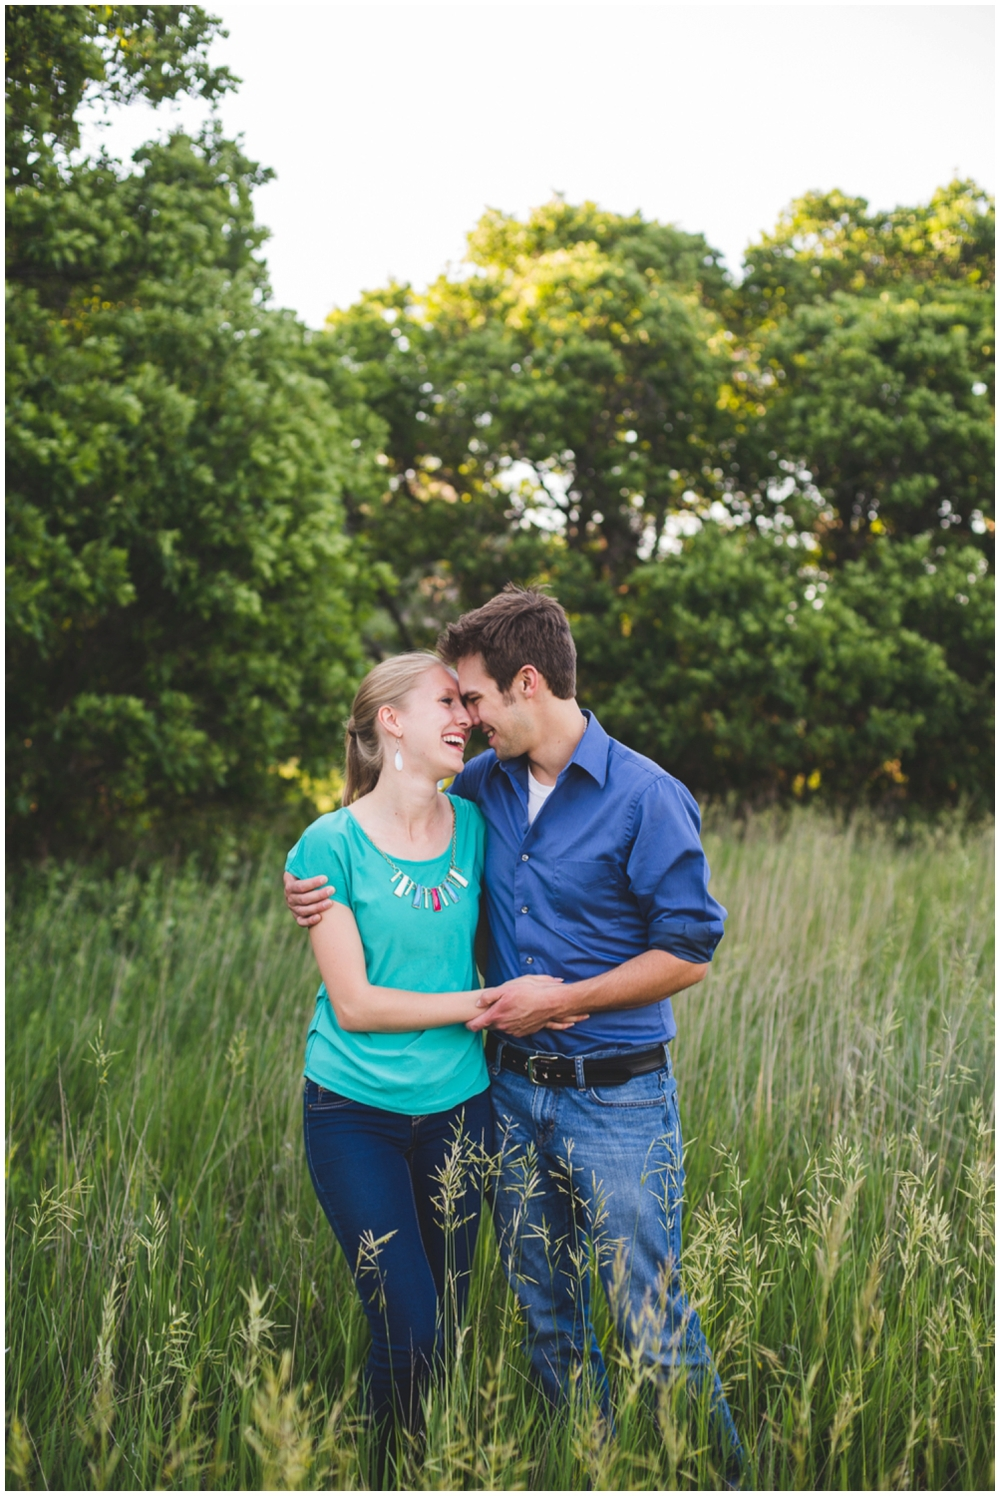 Emily+Josh_Engagement_BLOG_0036.jpg